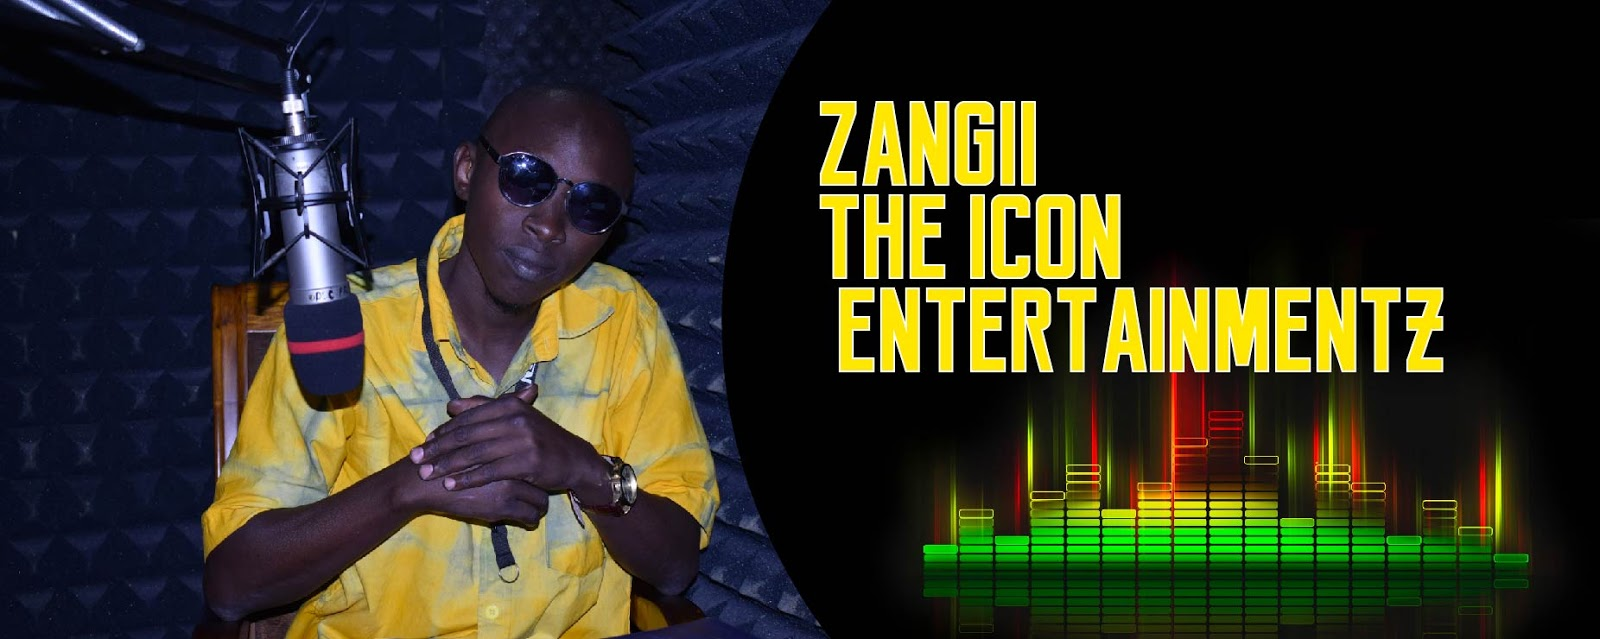 ZANGII THE ICON ENTERTAINMENTz